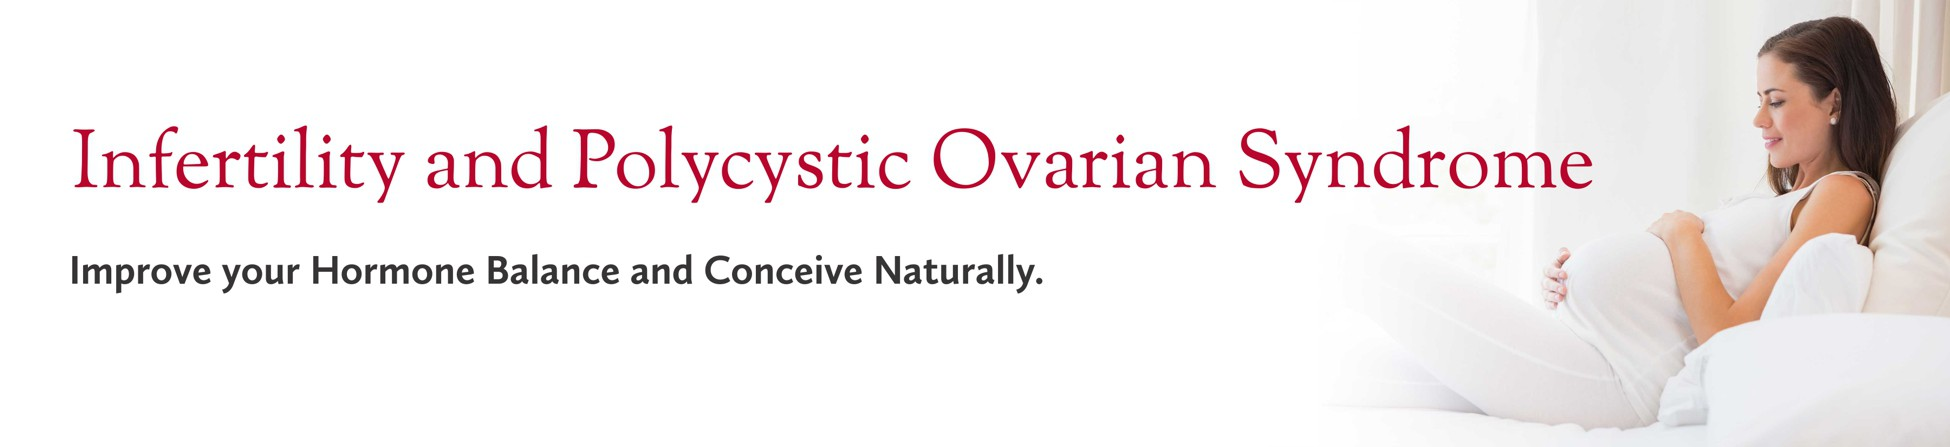 Infertility and Polycyctic Ovarian Syndrome